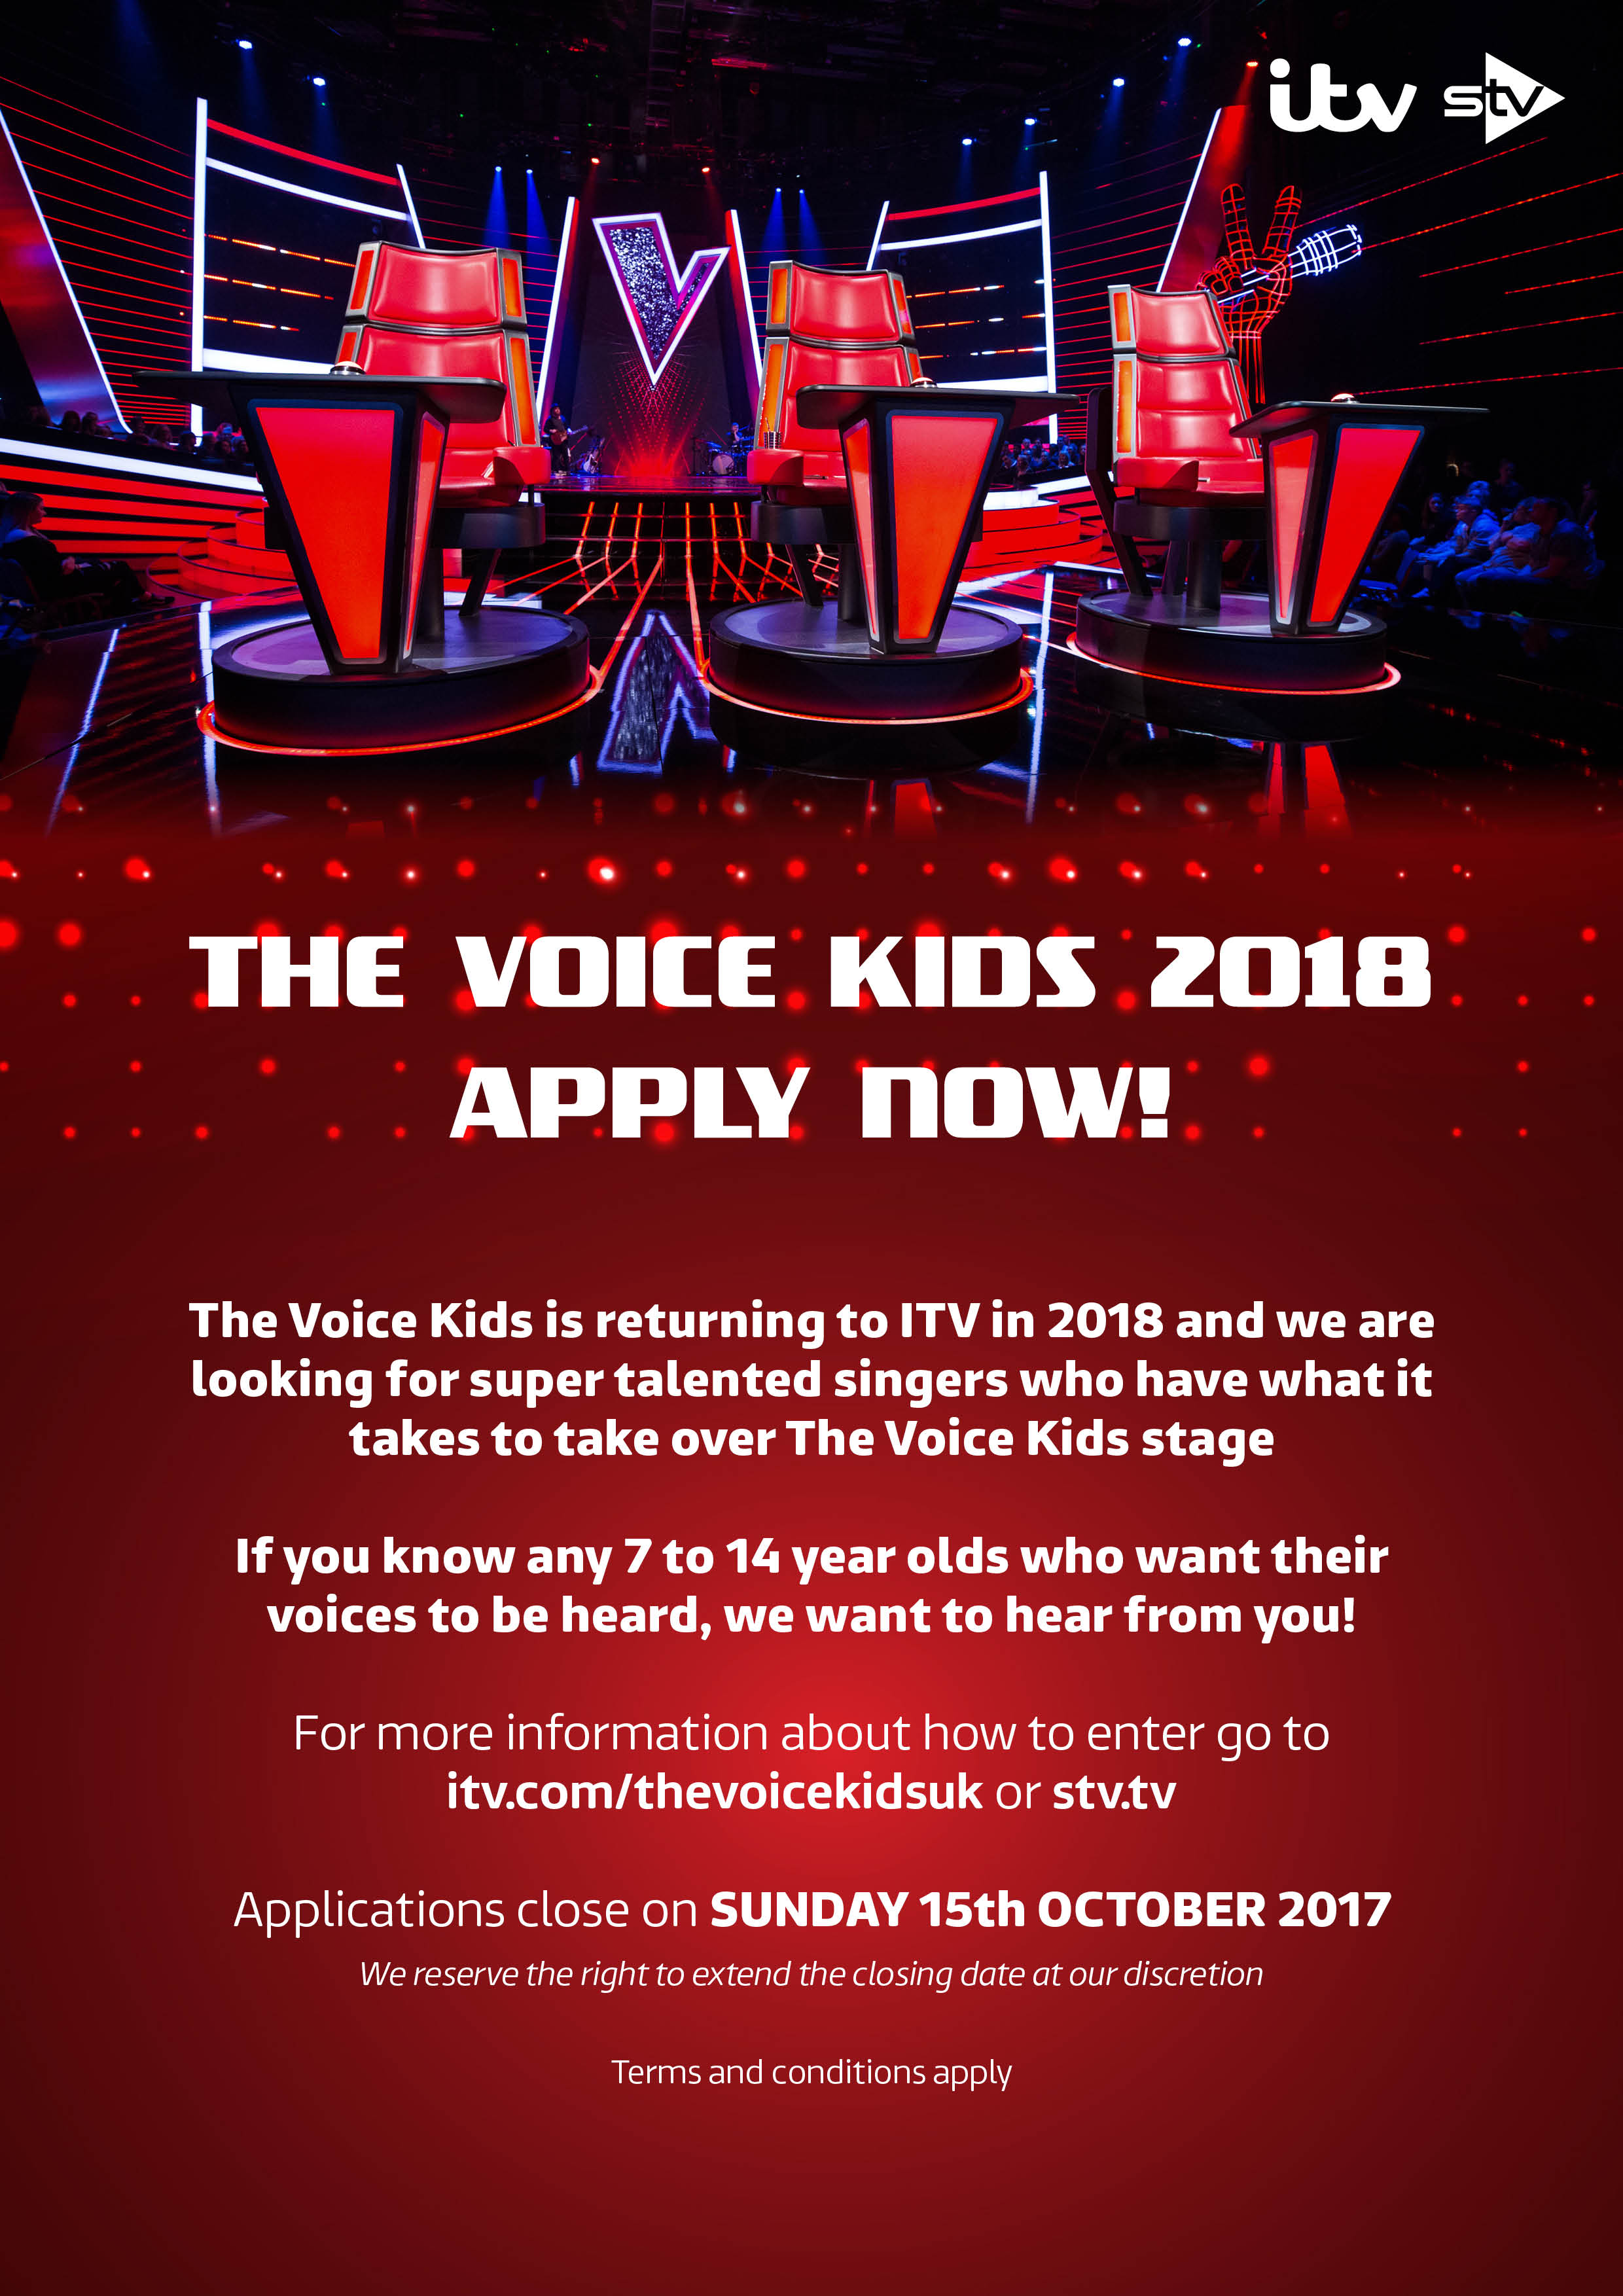 The Voice Kids 2018 – Apply Now!